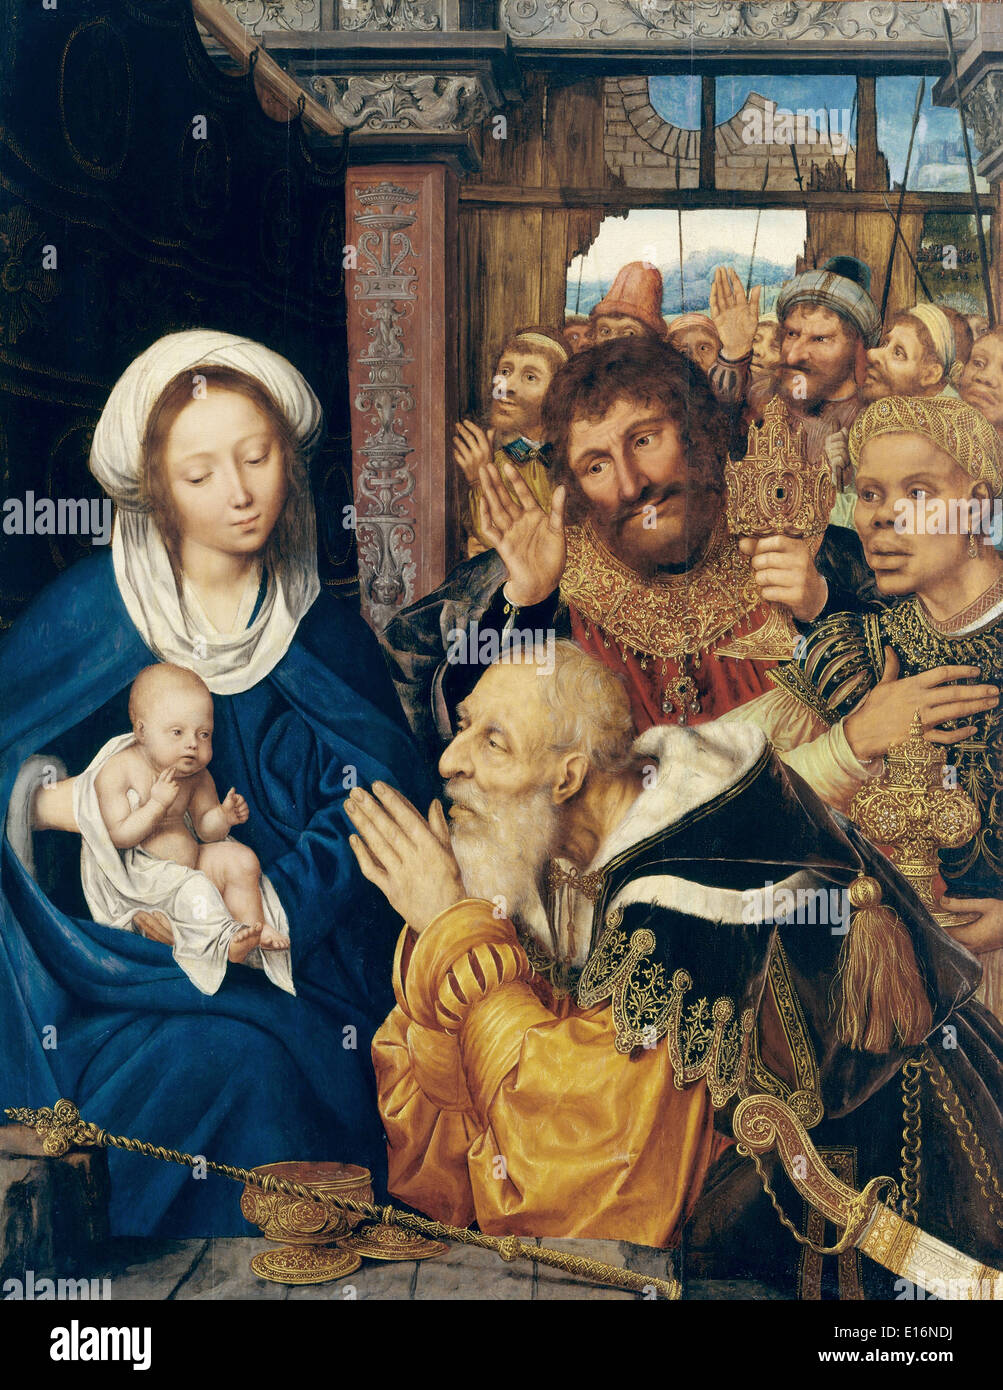 The Adoration of the Magi by Quentin Metsys, 1526 - Stock Image